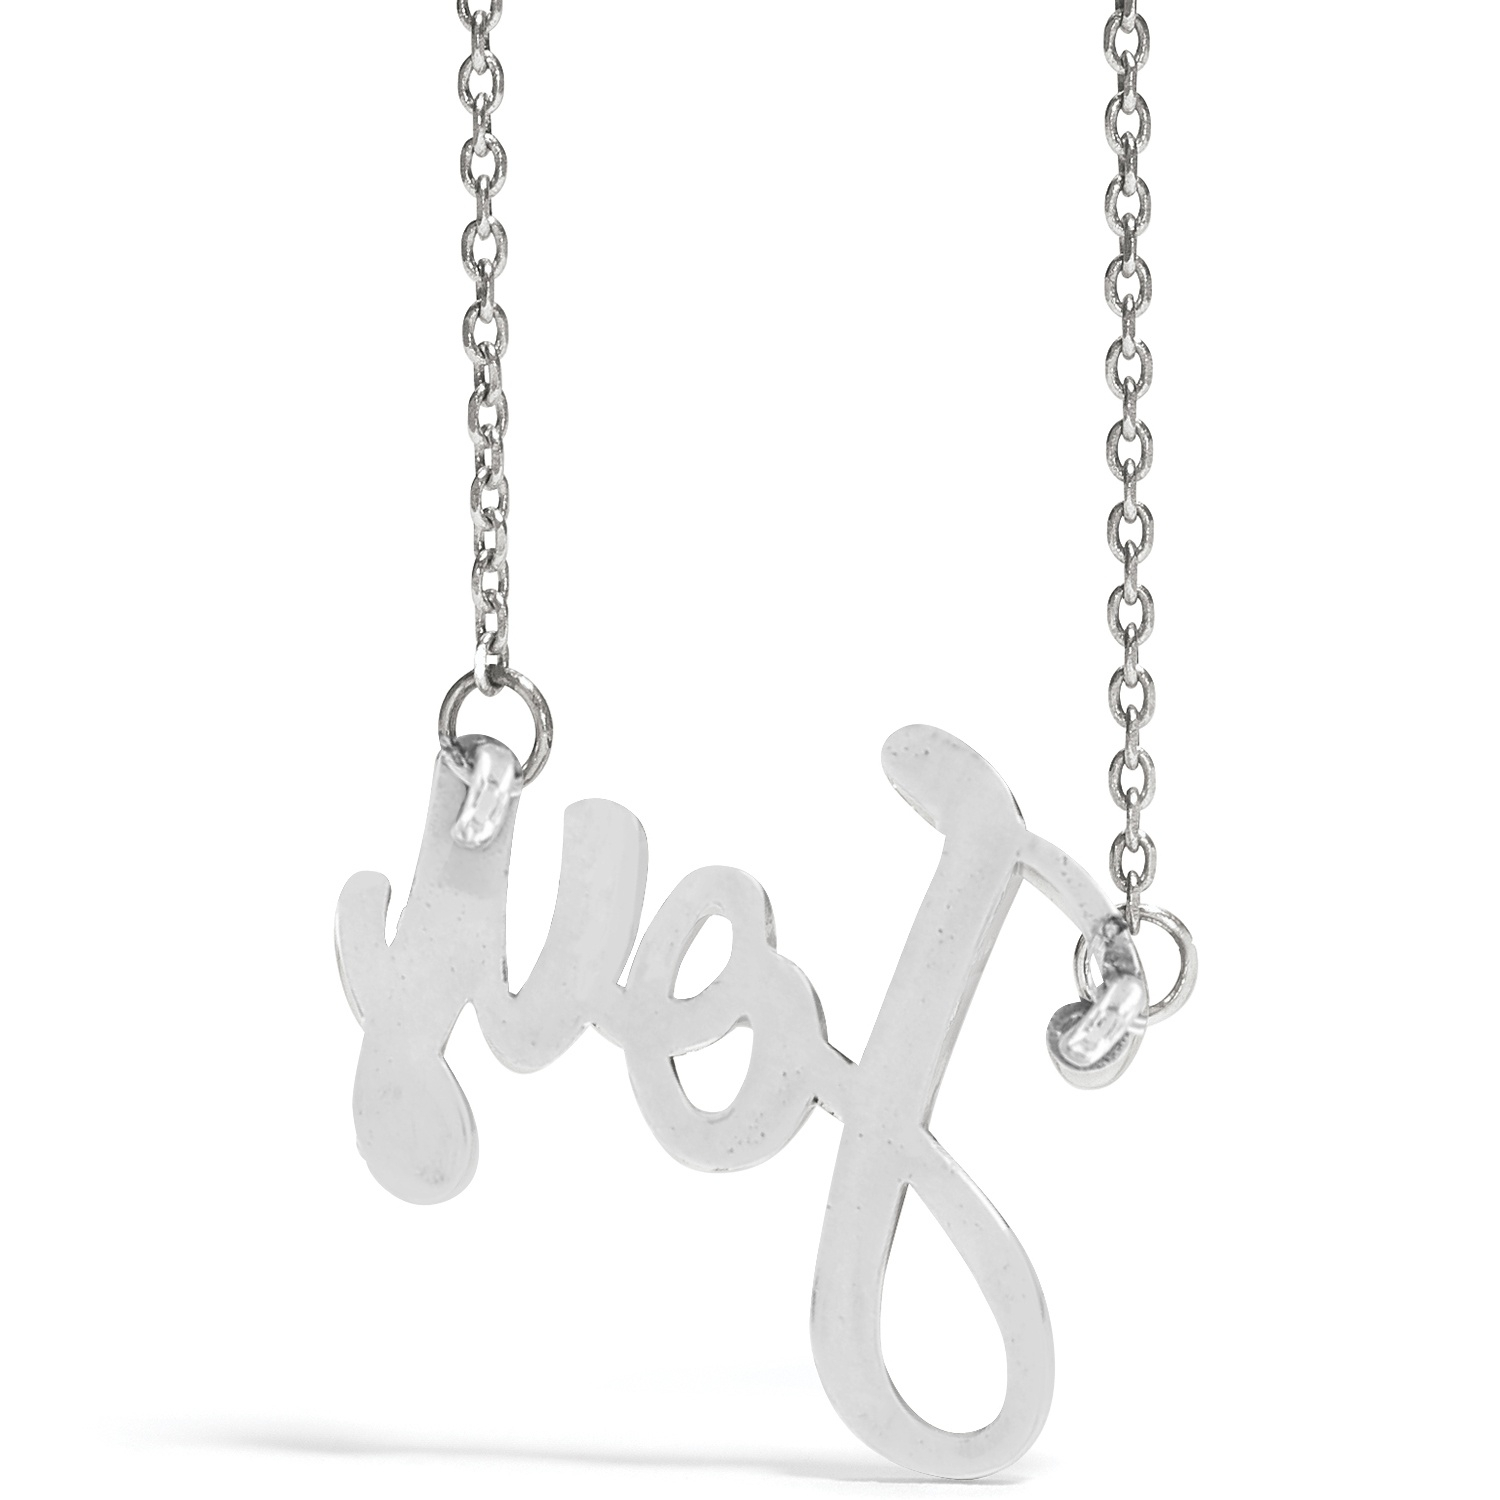 Joy Script Necklace Within Most Current Loved Script Necklaces (View 16 of 25)